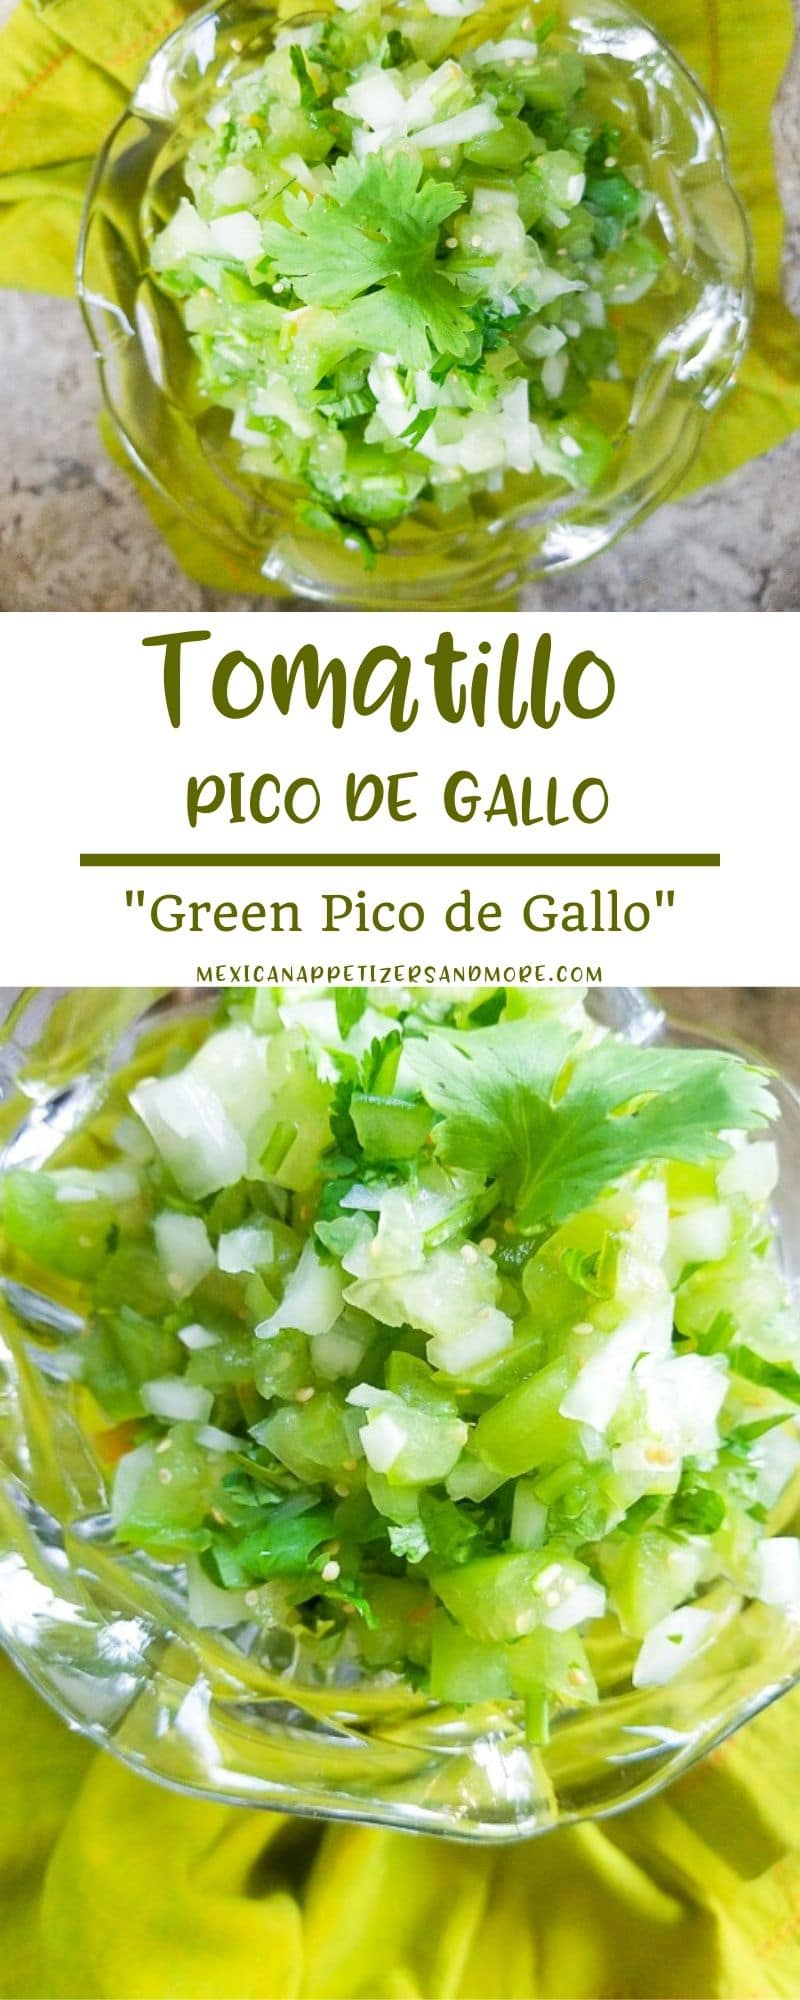 Tomatillo Pico de Gallo is a refreshing salsa that is slightly tart, slightly tangy and perfect simply with tortilla chips but excellent as a topping! Top on everything from fish, shrimp tacos to quesadillas and tostadas. #tomatillosalsa #tomatillorecipes #tomatillopicodegallo #greenpicodegallo #tomatillosauce #picowithtomatillo